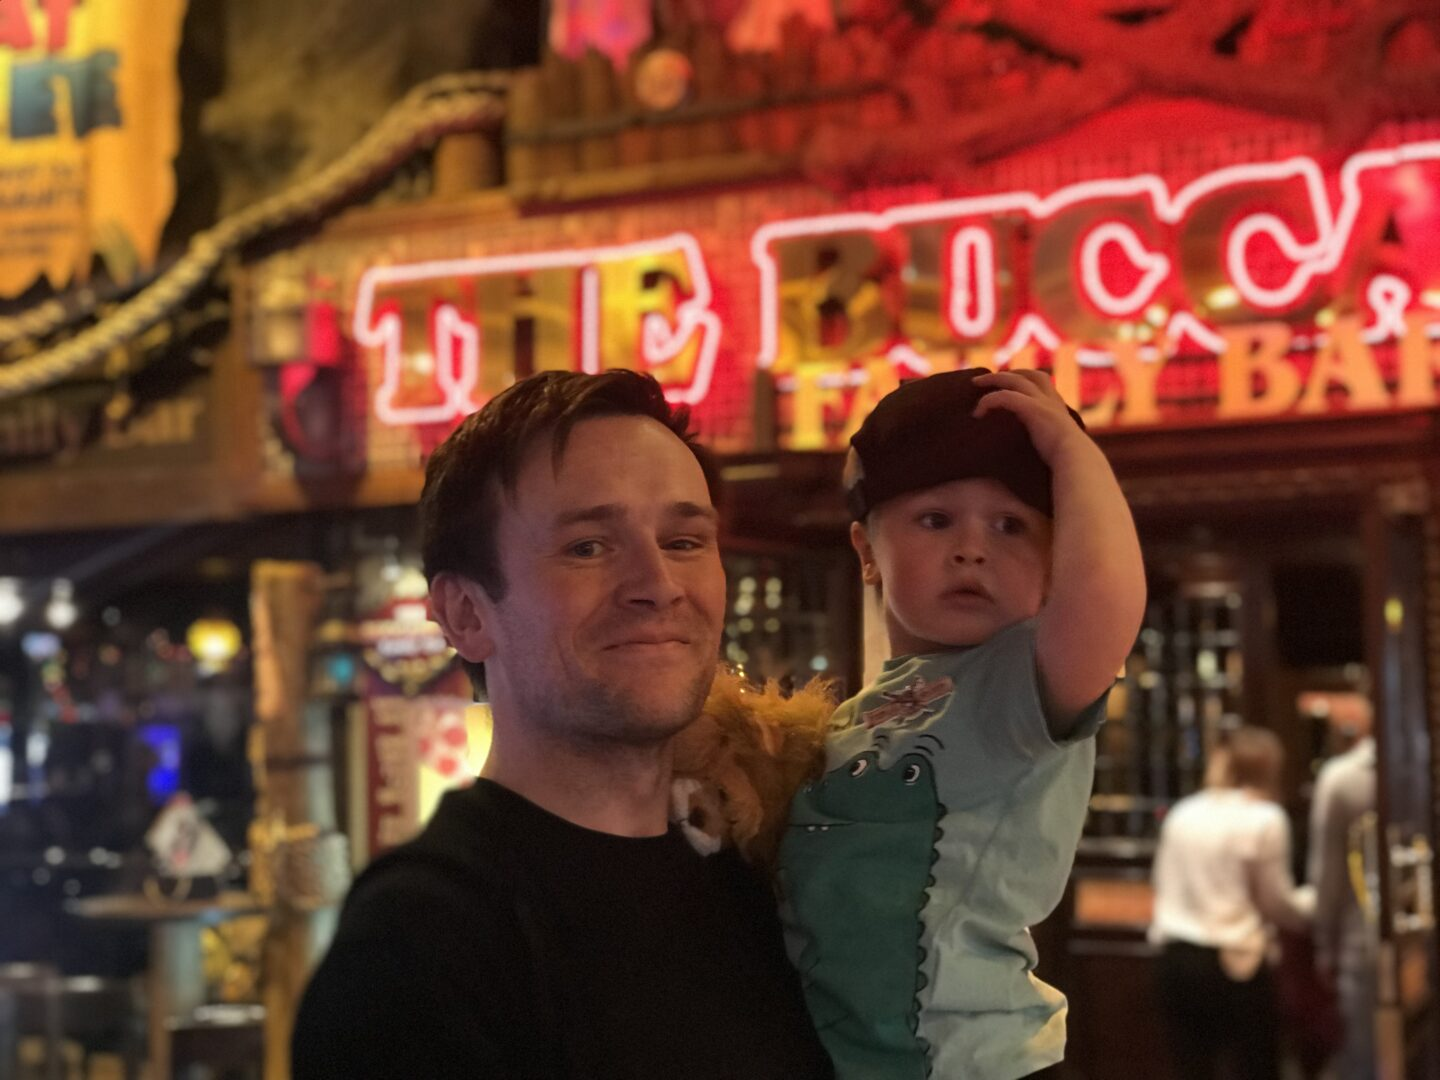 Neil and dexter outside the Buccaneer restaurant in Coral Island, Blackpool